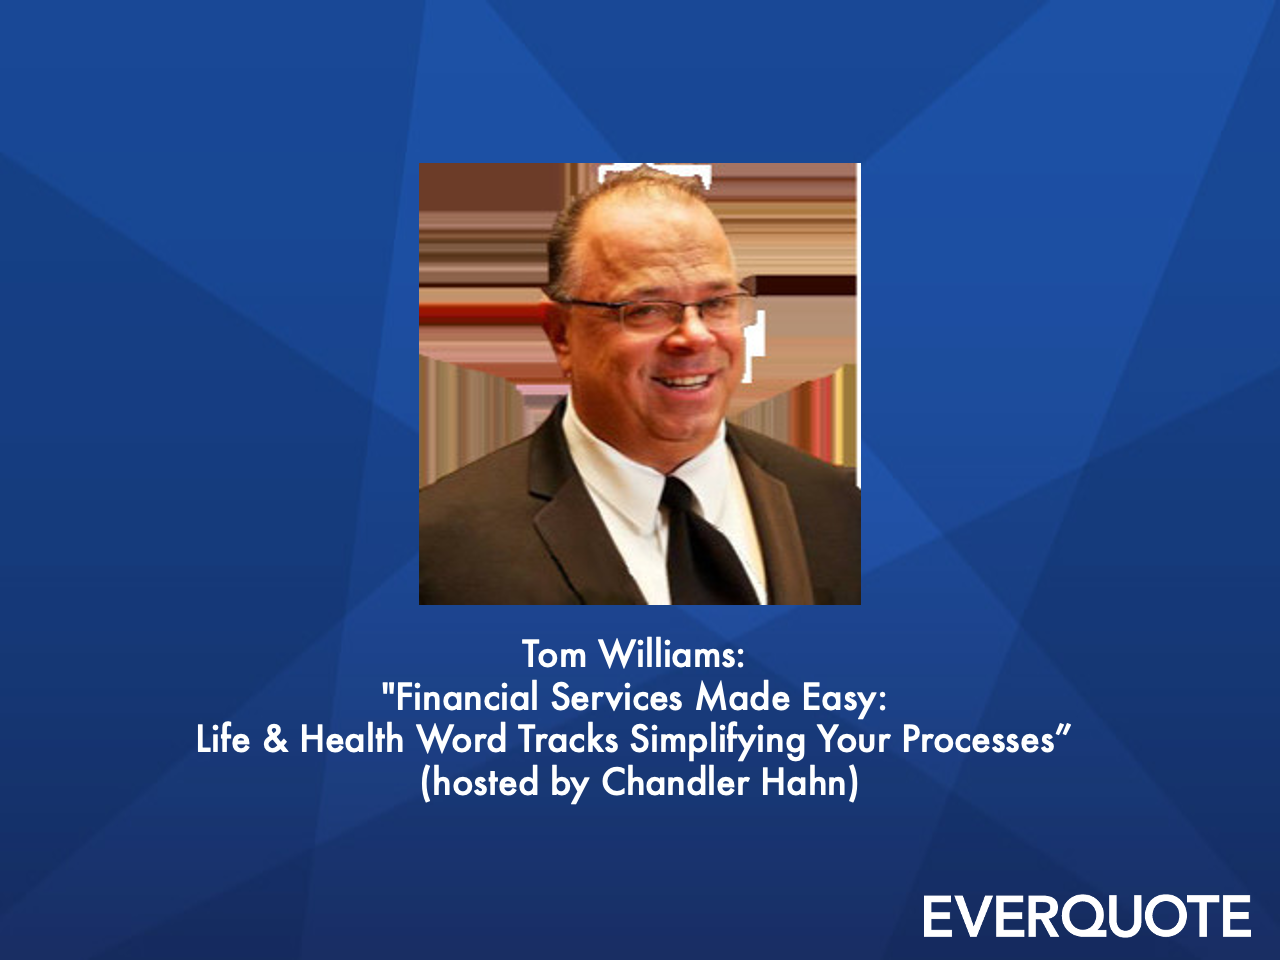 Financial Services Made Easy: Life & Health Word Tracks to Simplify Your Processes with Tom Williams